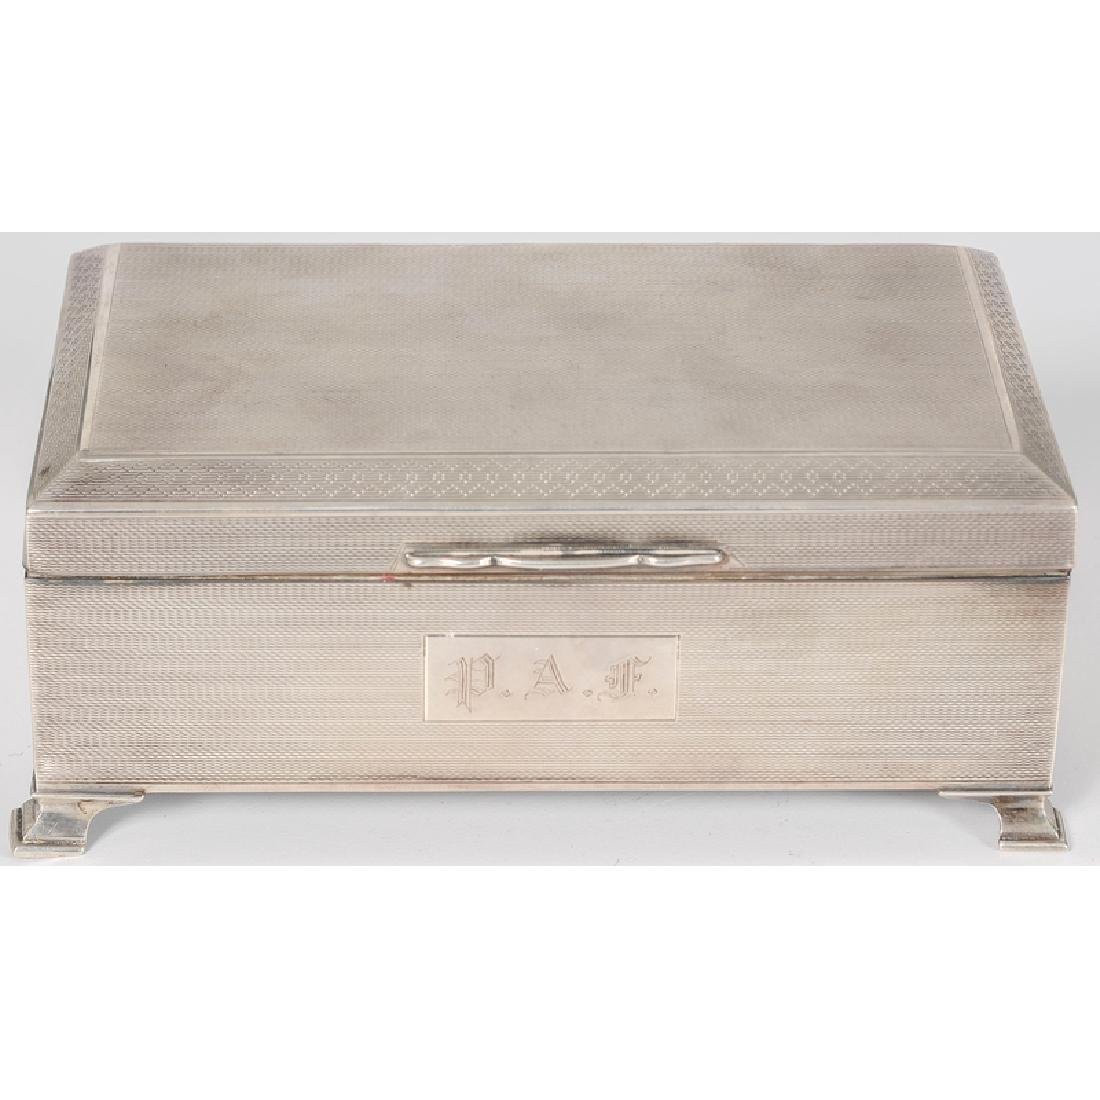 English Footed Sterling Silver Cigarette Box by Bert - 2